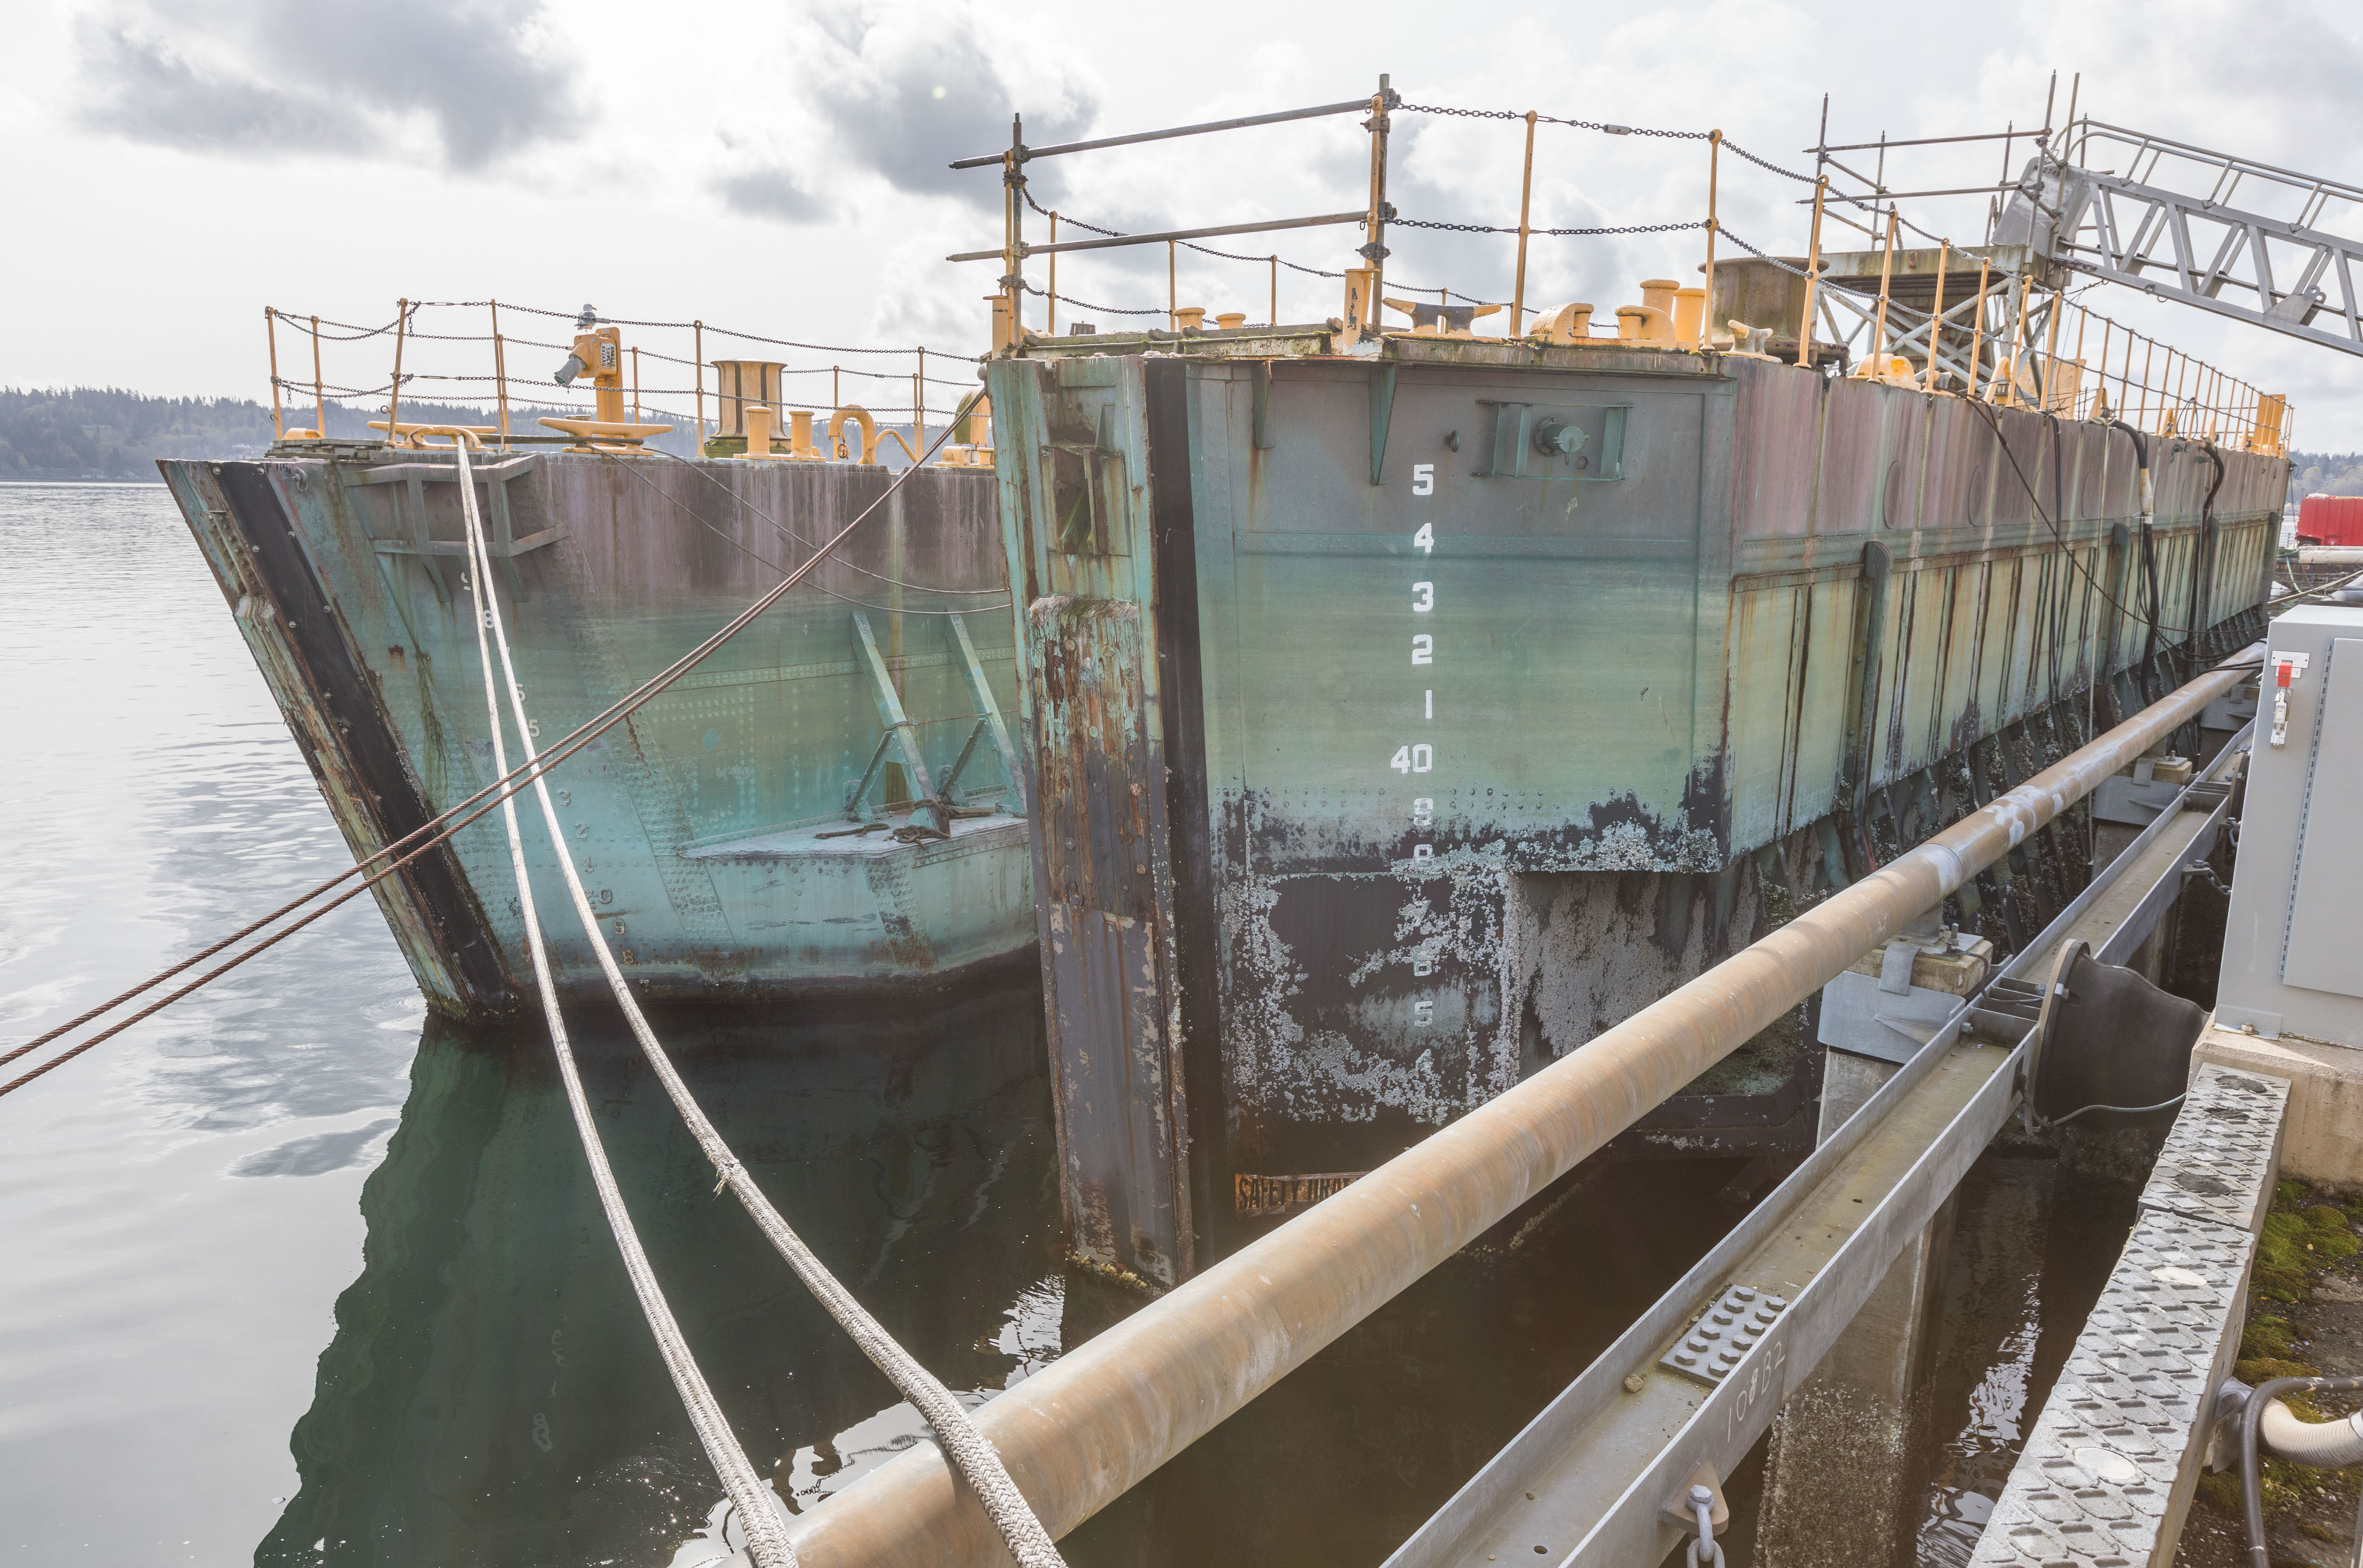 Historic Shipyard Caissons On Sale In Disposal Effort